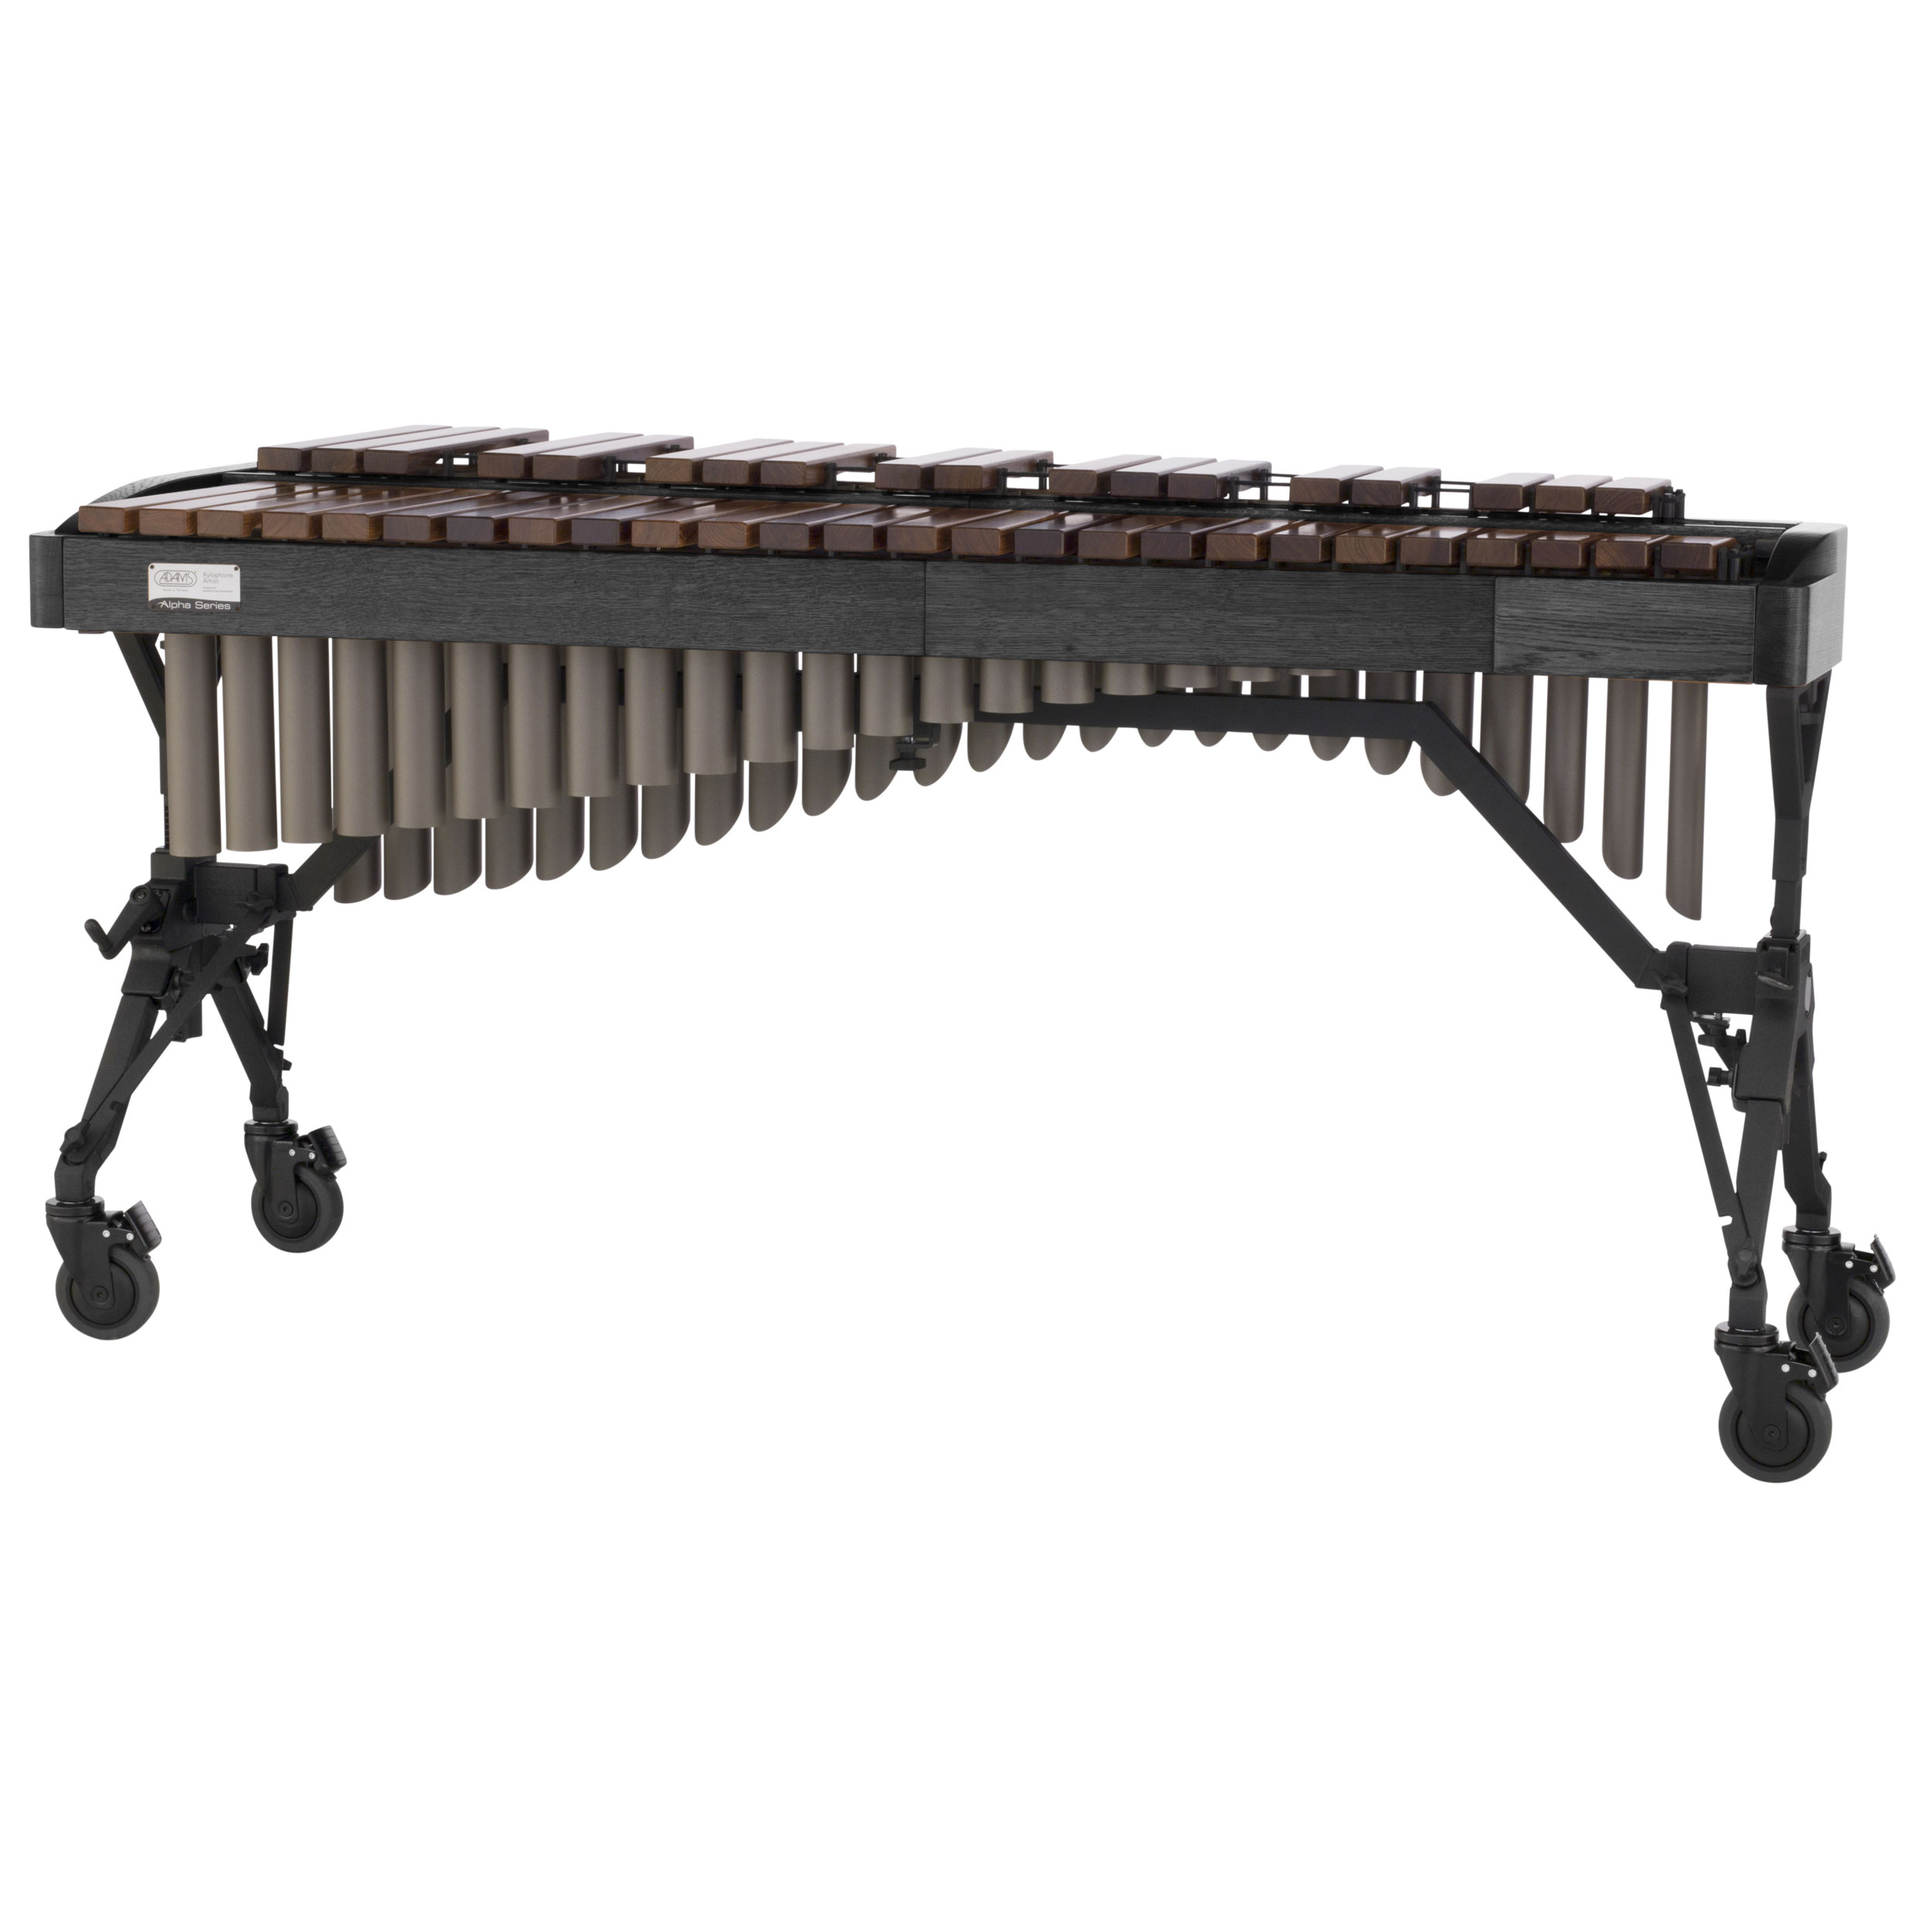 Adams 3.5 Octave Alpha Rosewood Xylophone with Graphite Oak Rails & Desert Resonators